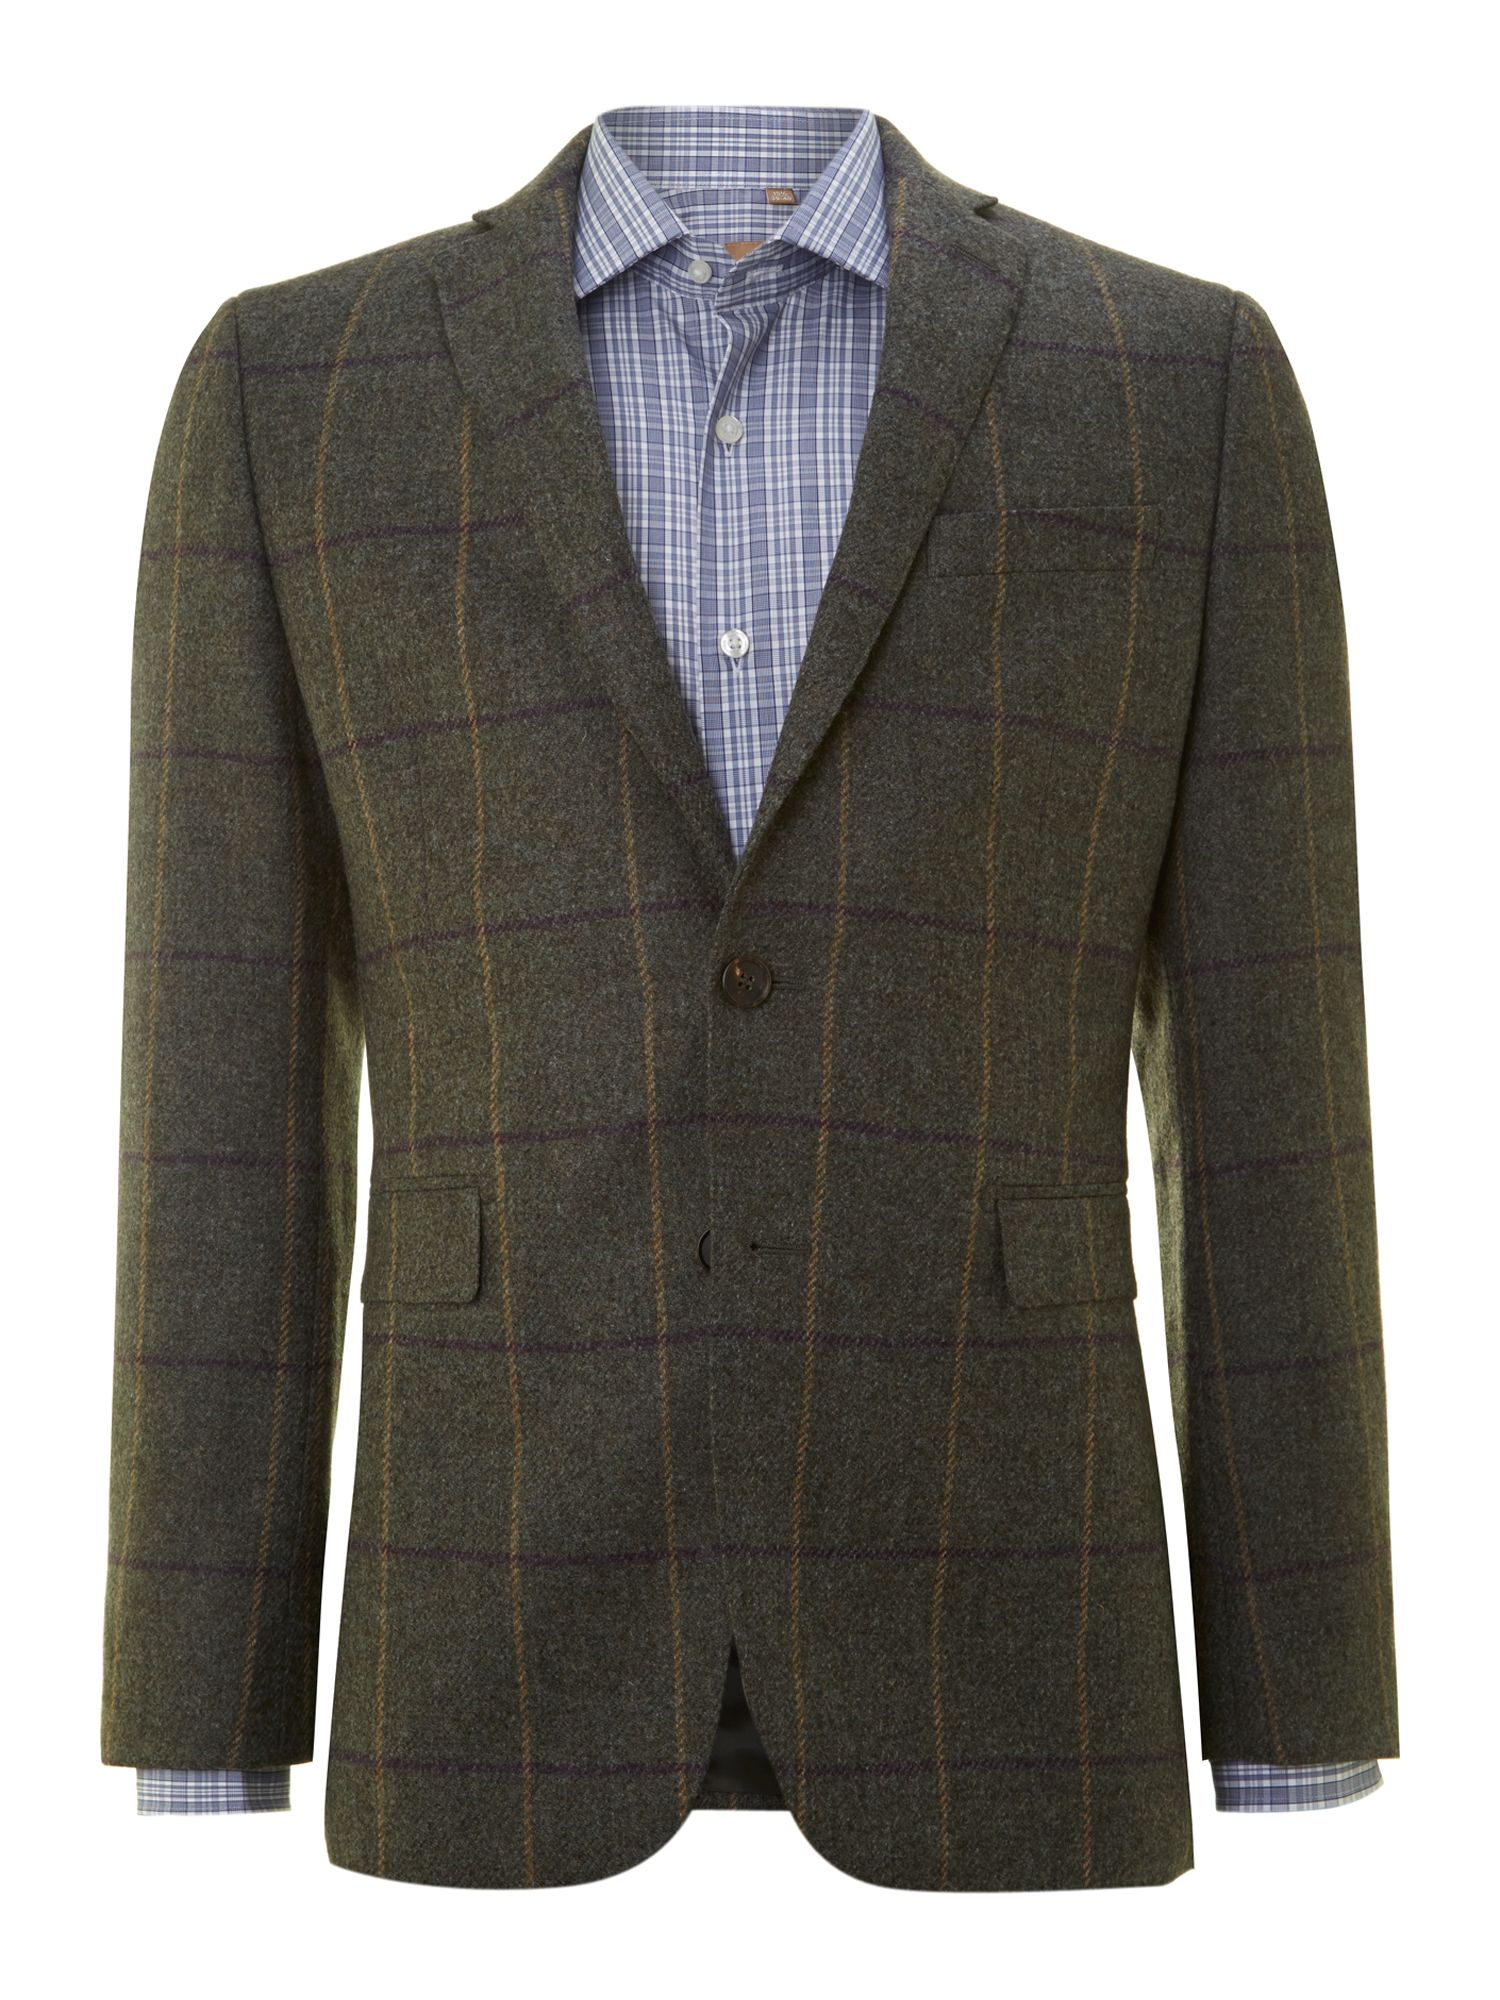 Contemporary check jacket